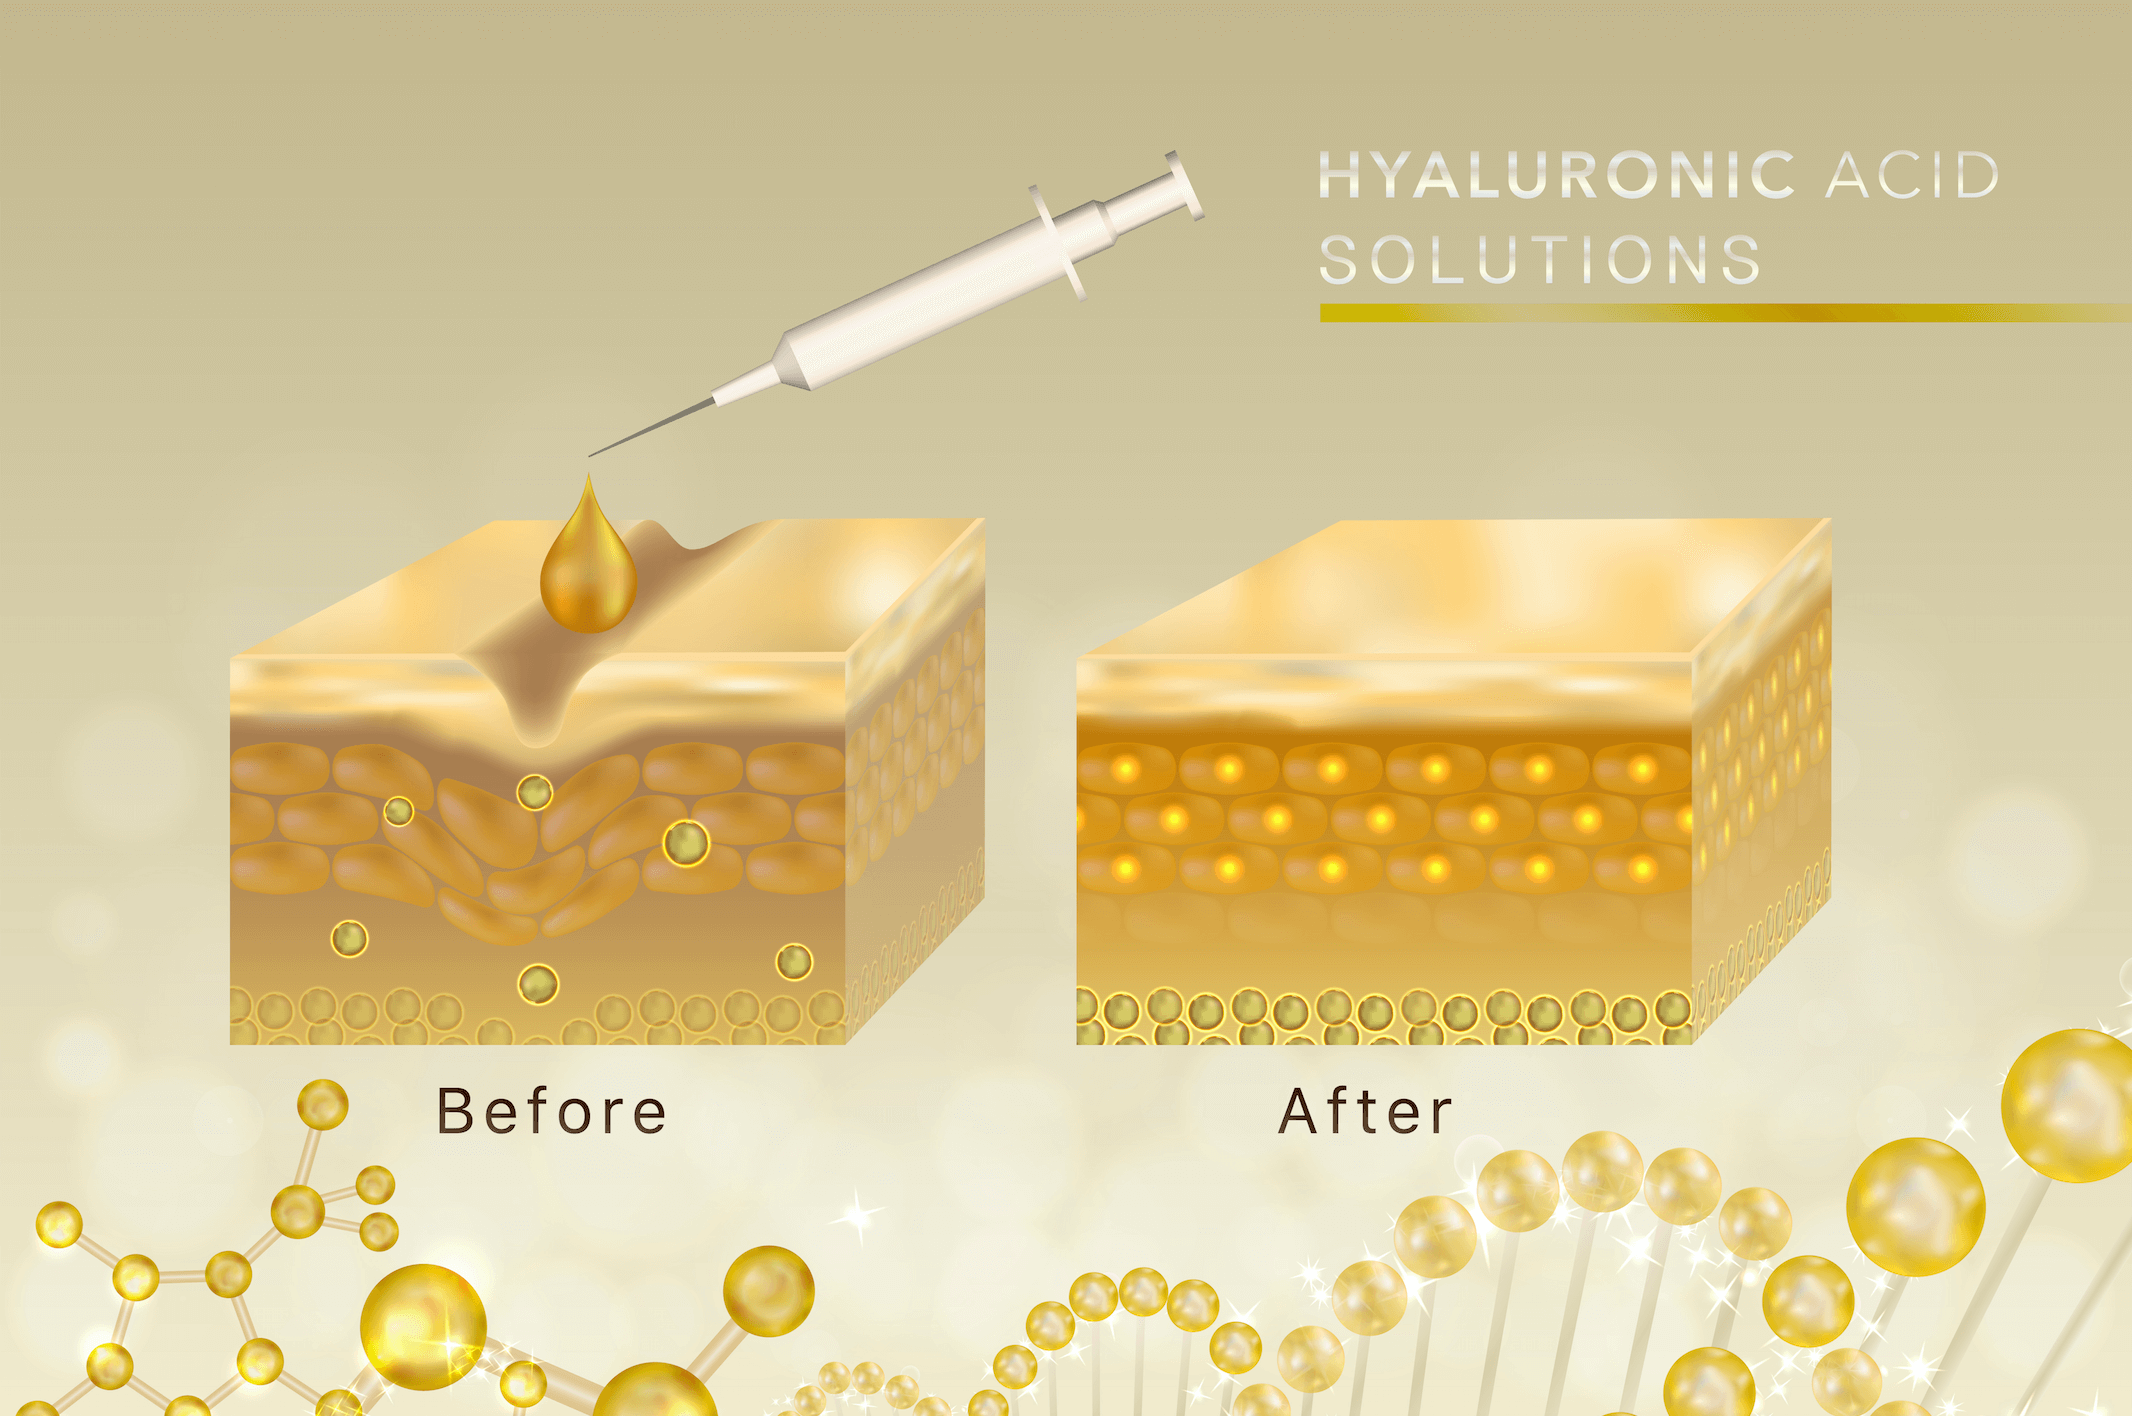 Illustration of the effect of hyaluronic acid